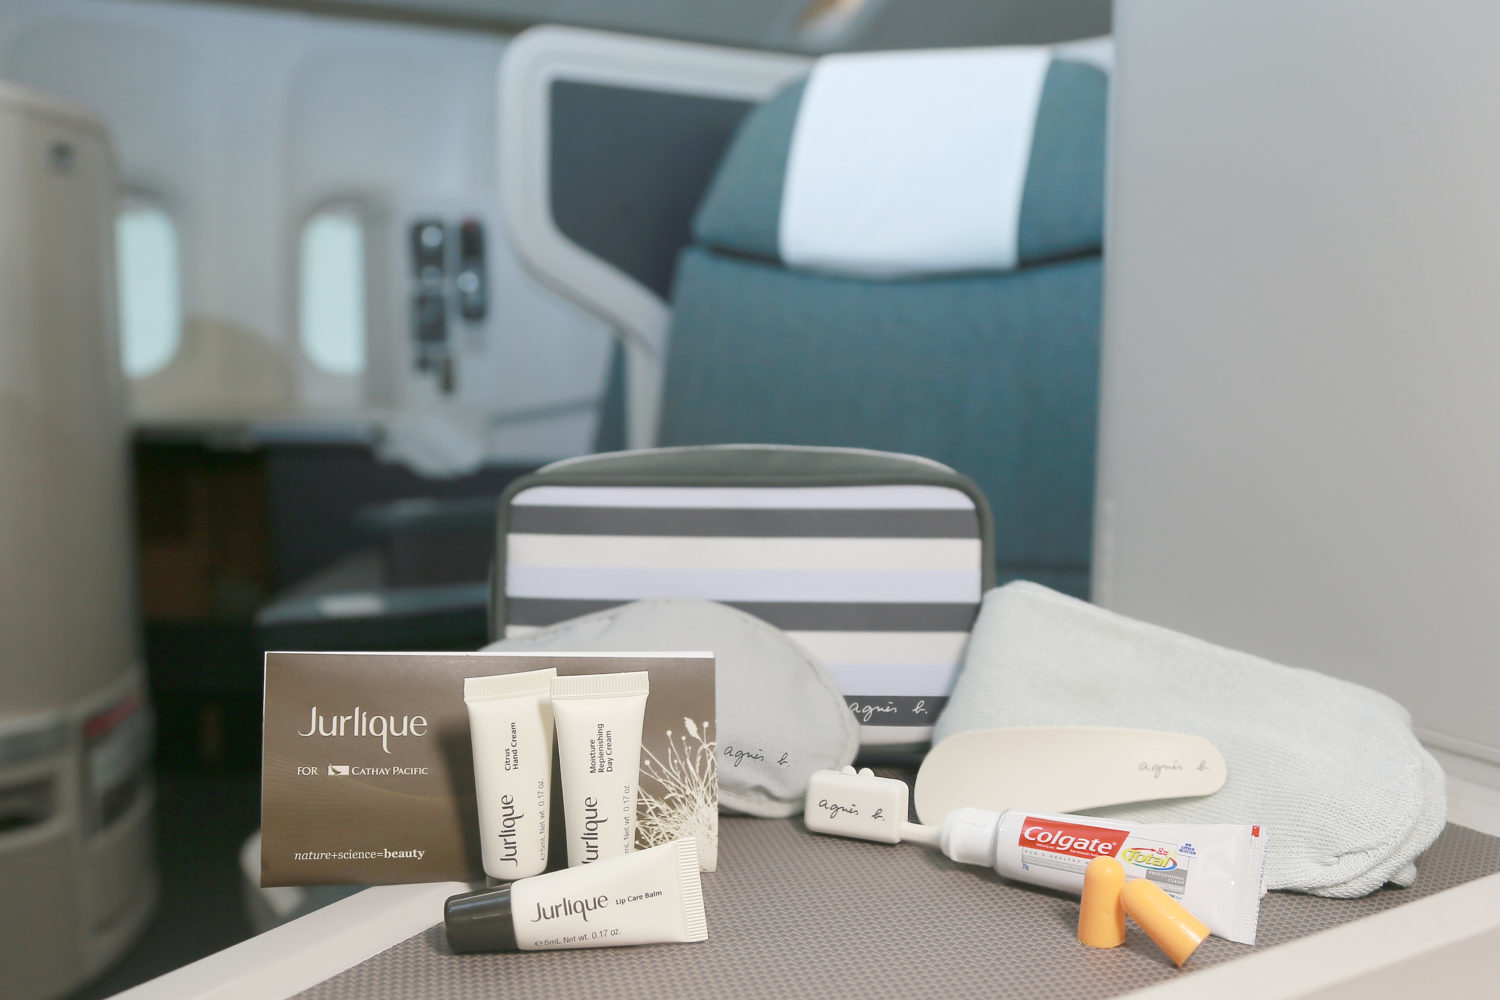 What's Inside a Business Class Amenity Kit. SkyLux - Discounted Business and First Class Flights